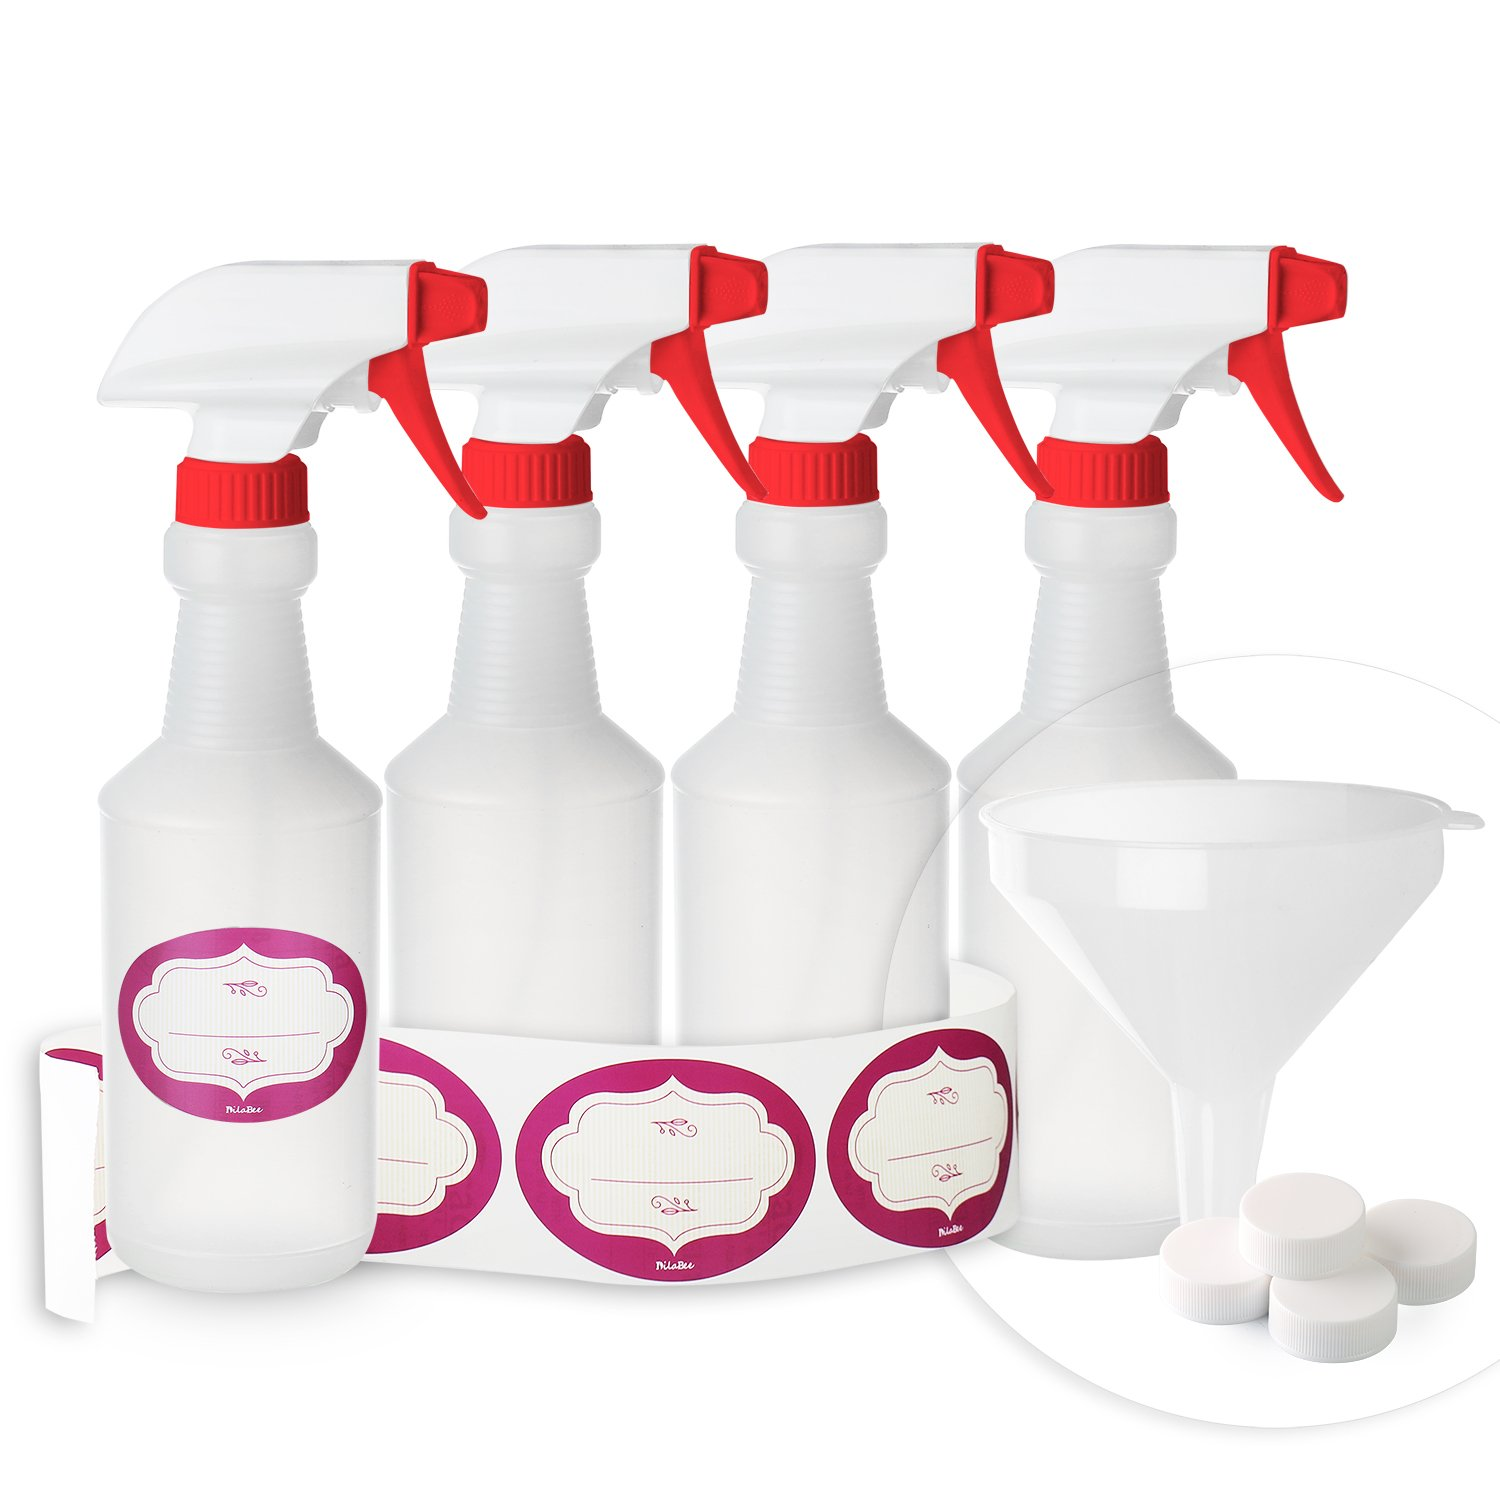 DilaBee Empty Plastic Spray Bottles Pack of 4 - Made in USA - 16 Oz. - 100% Leak Proof, Professional Heavy-Duty with Bonus Funnel, Caps and Labels! Multi Purpose Use (4)